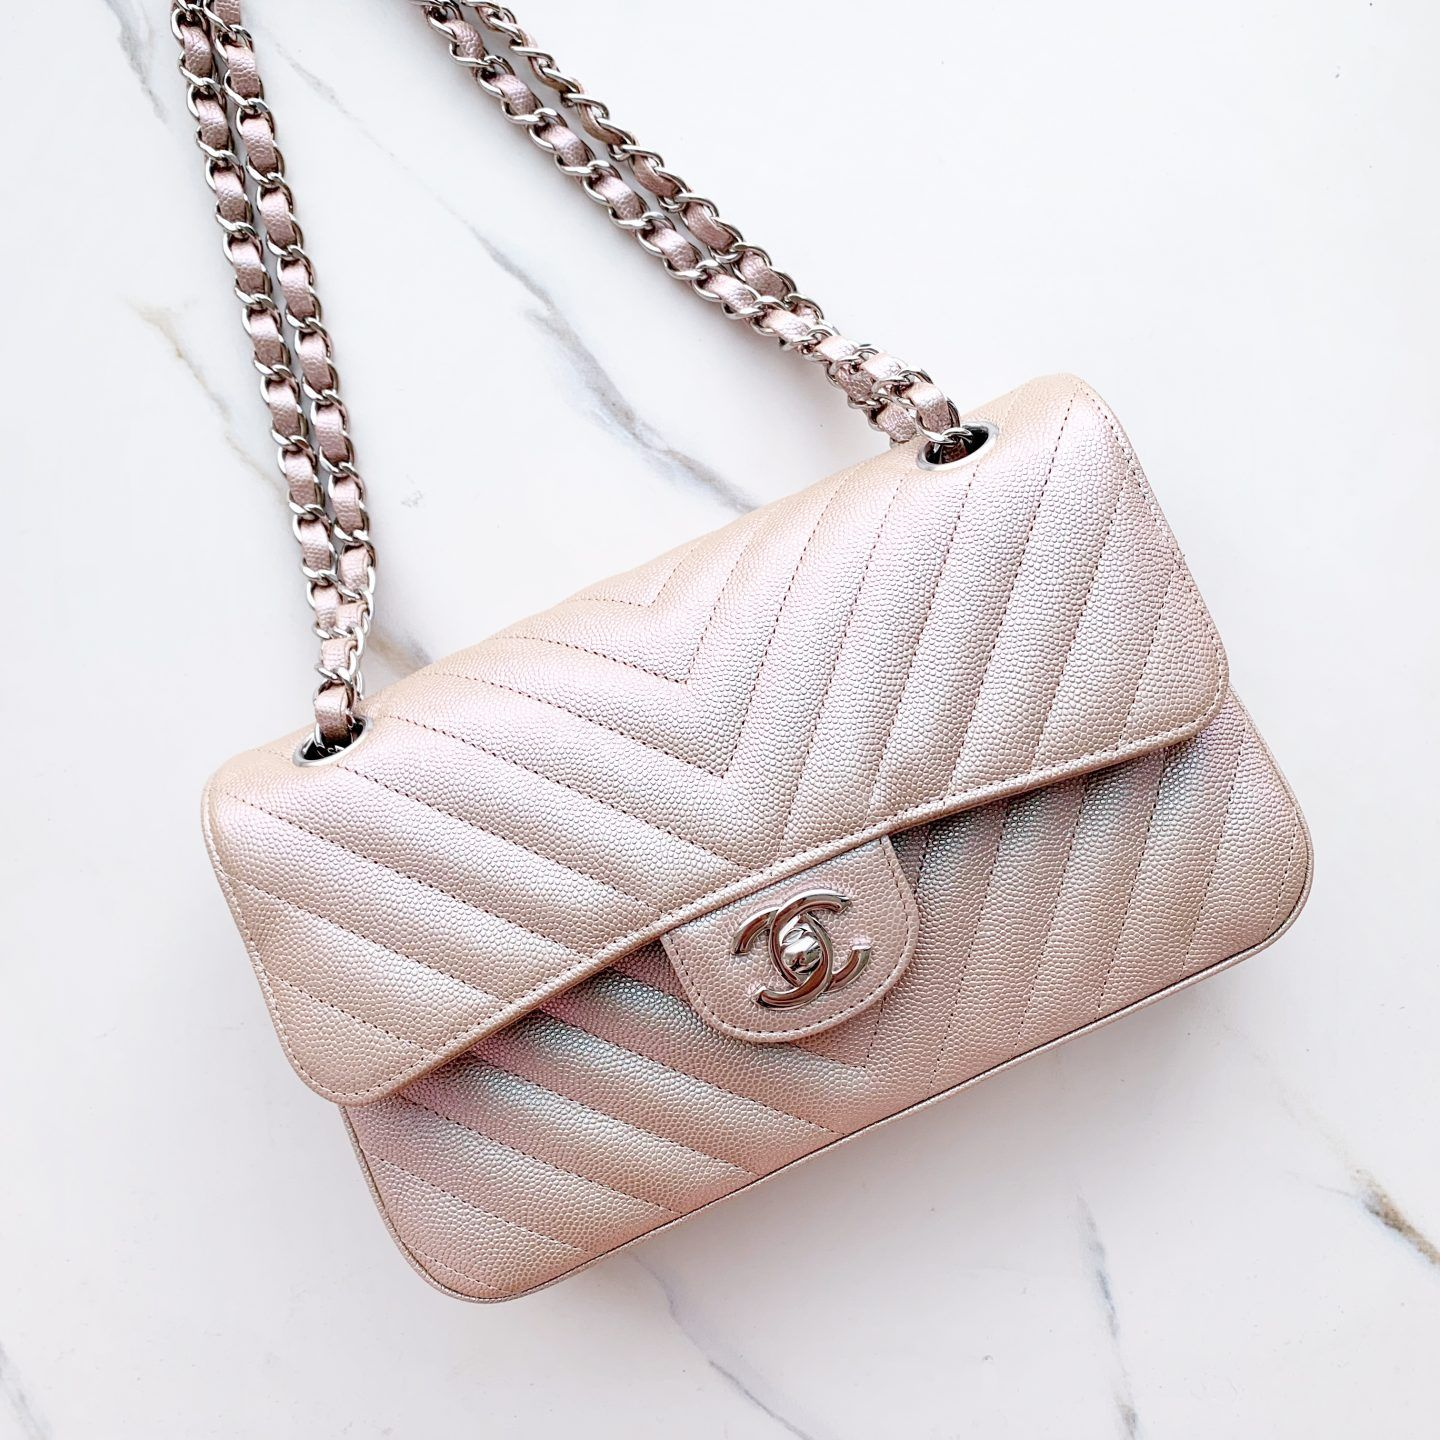 7acb36569e98 The Best First Chanel Bag? - Chase Amie | Bags in 2019 | Chanel bag ...